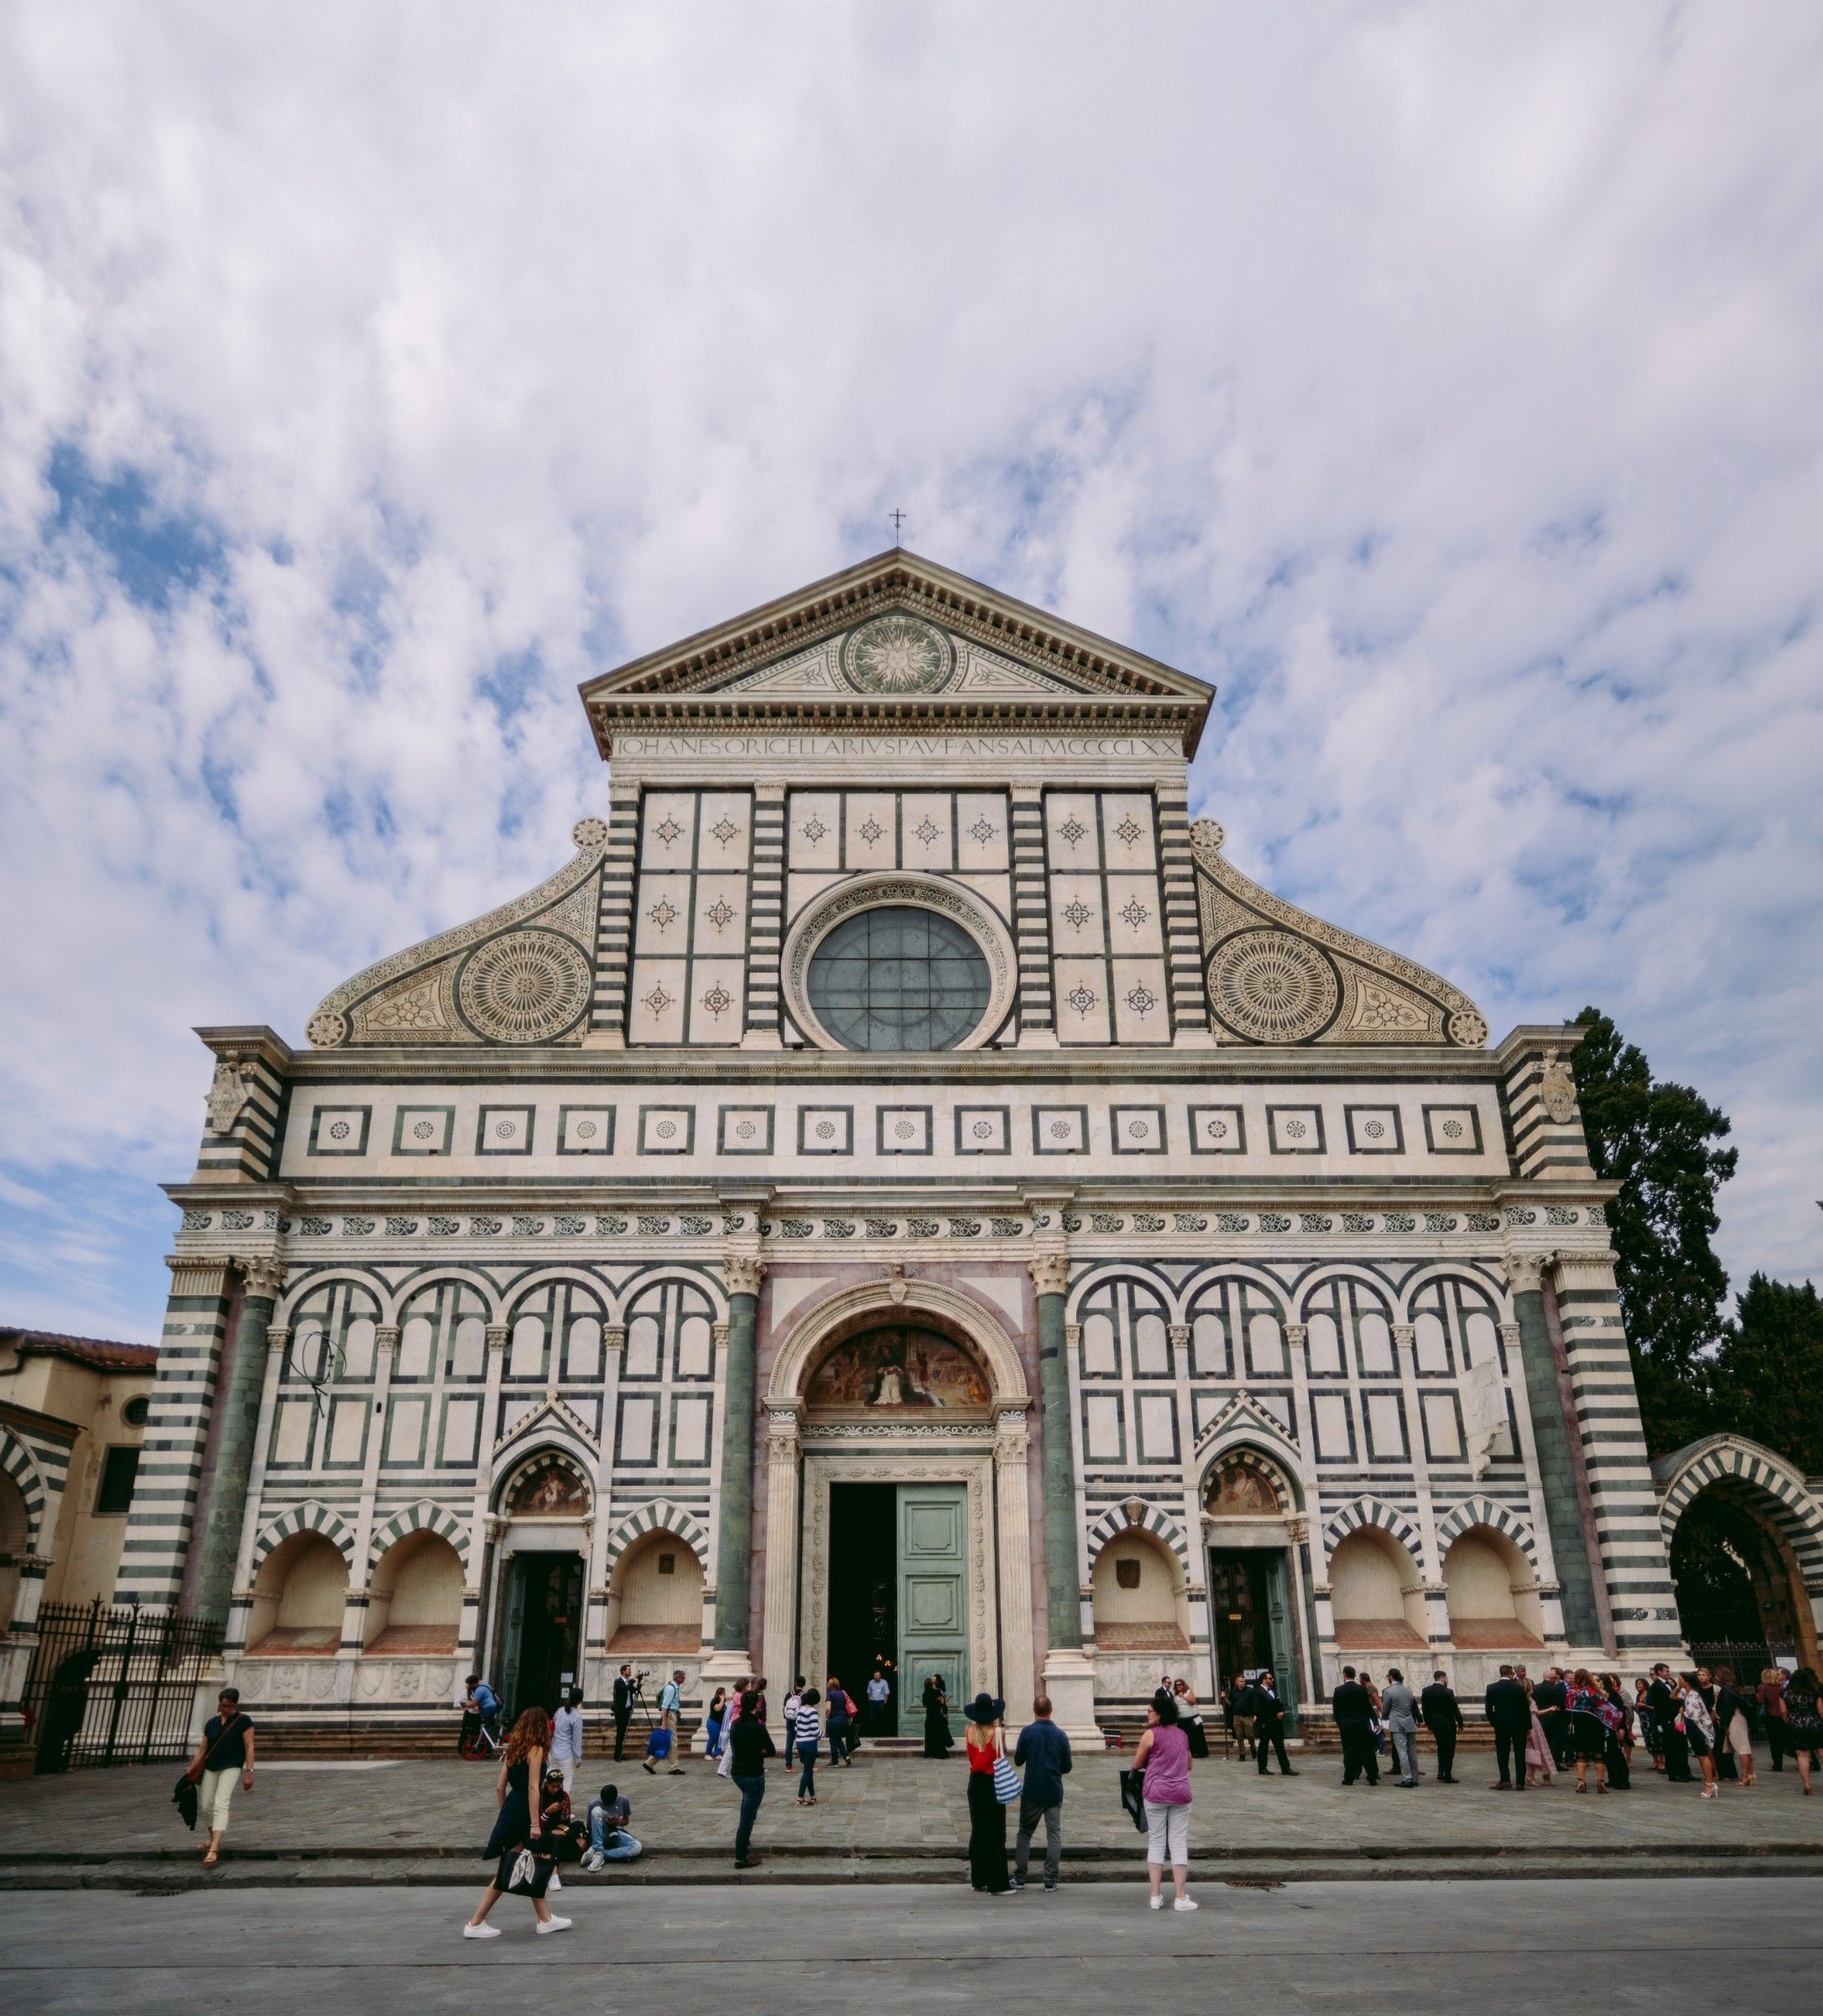 Church Wedding Decorations Ideas For Your Wedding In Italy: Santa Maria Novella Church In Florence, Italy. An